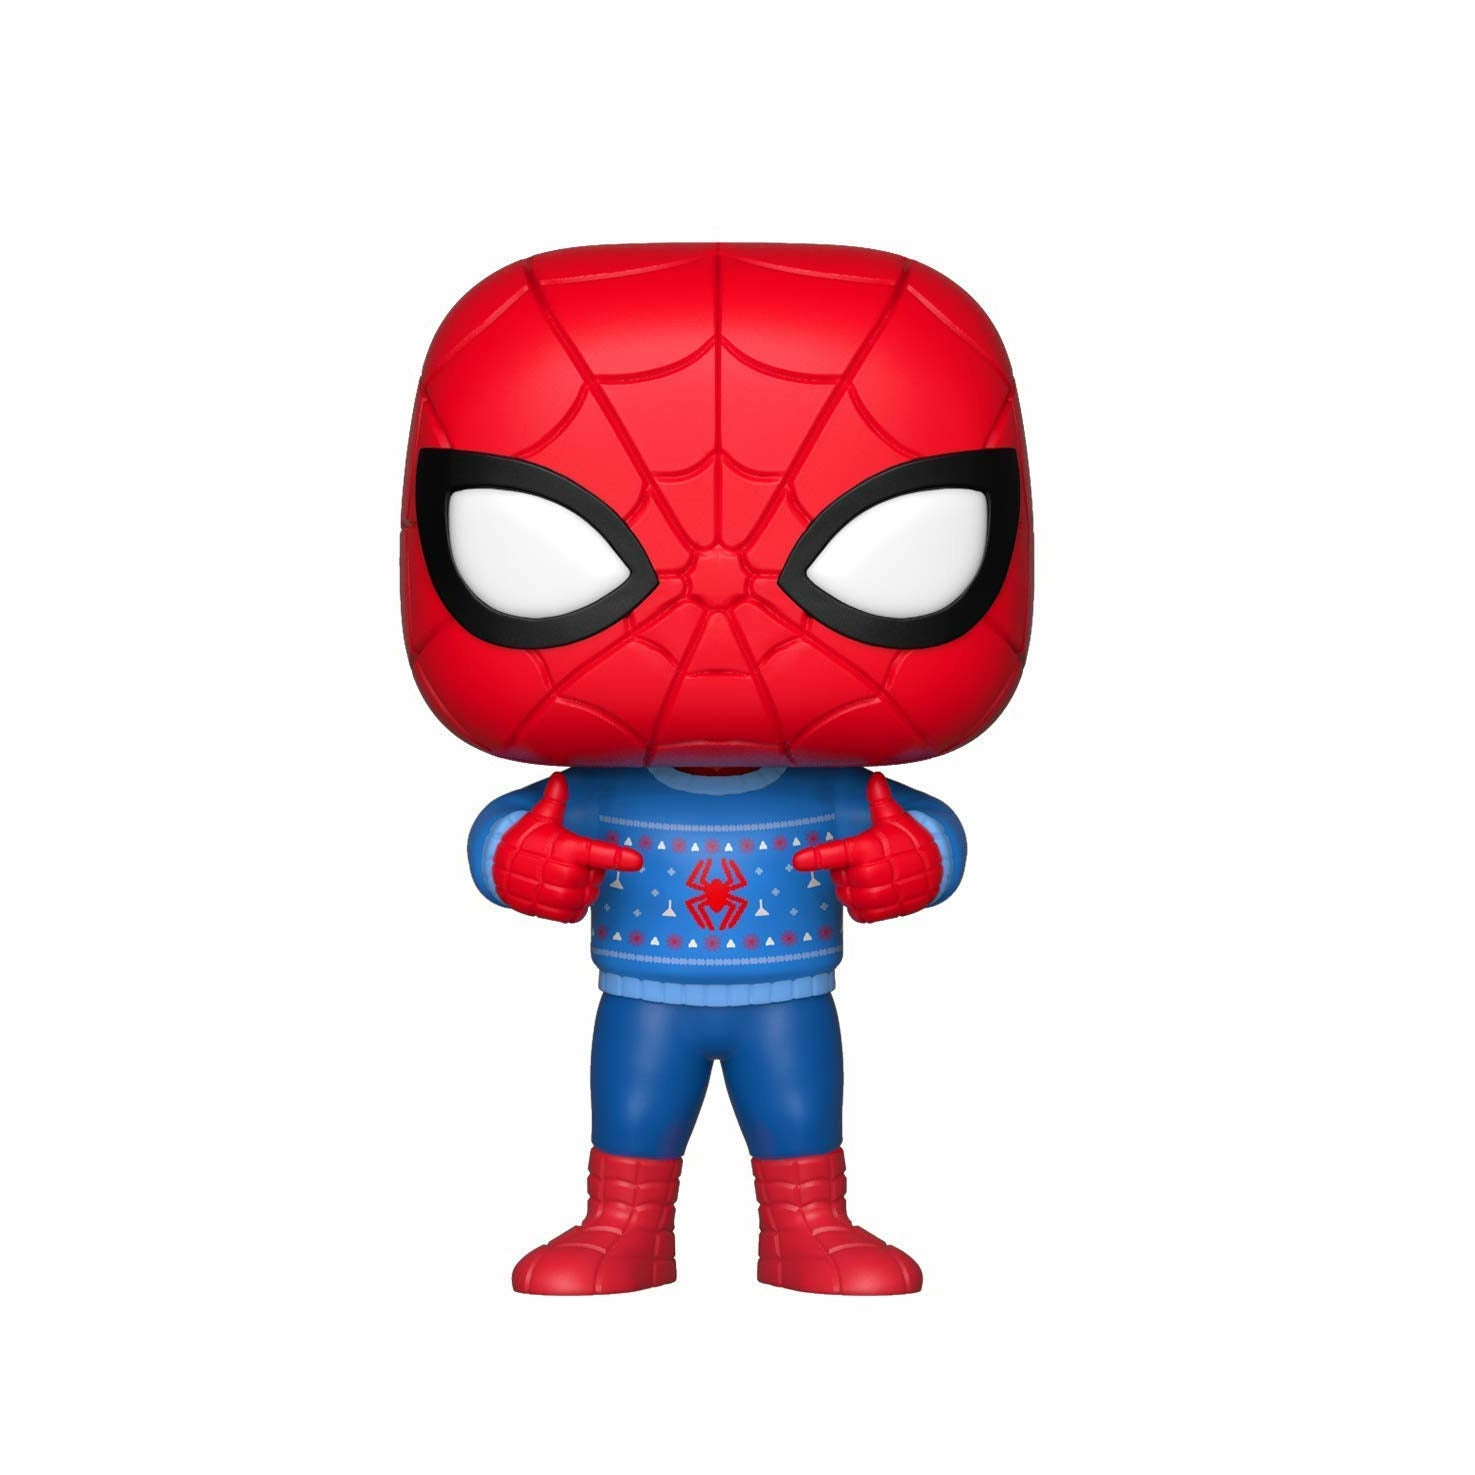 Marvel Spider-Man with Ugly Sweater Bobblehead Pop! Figure